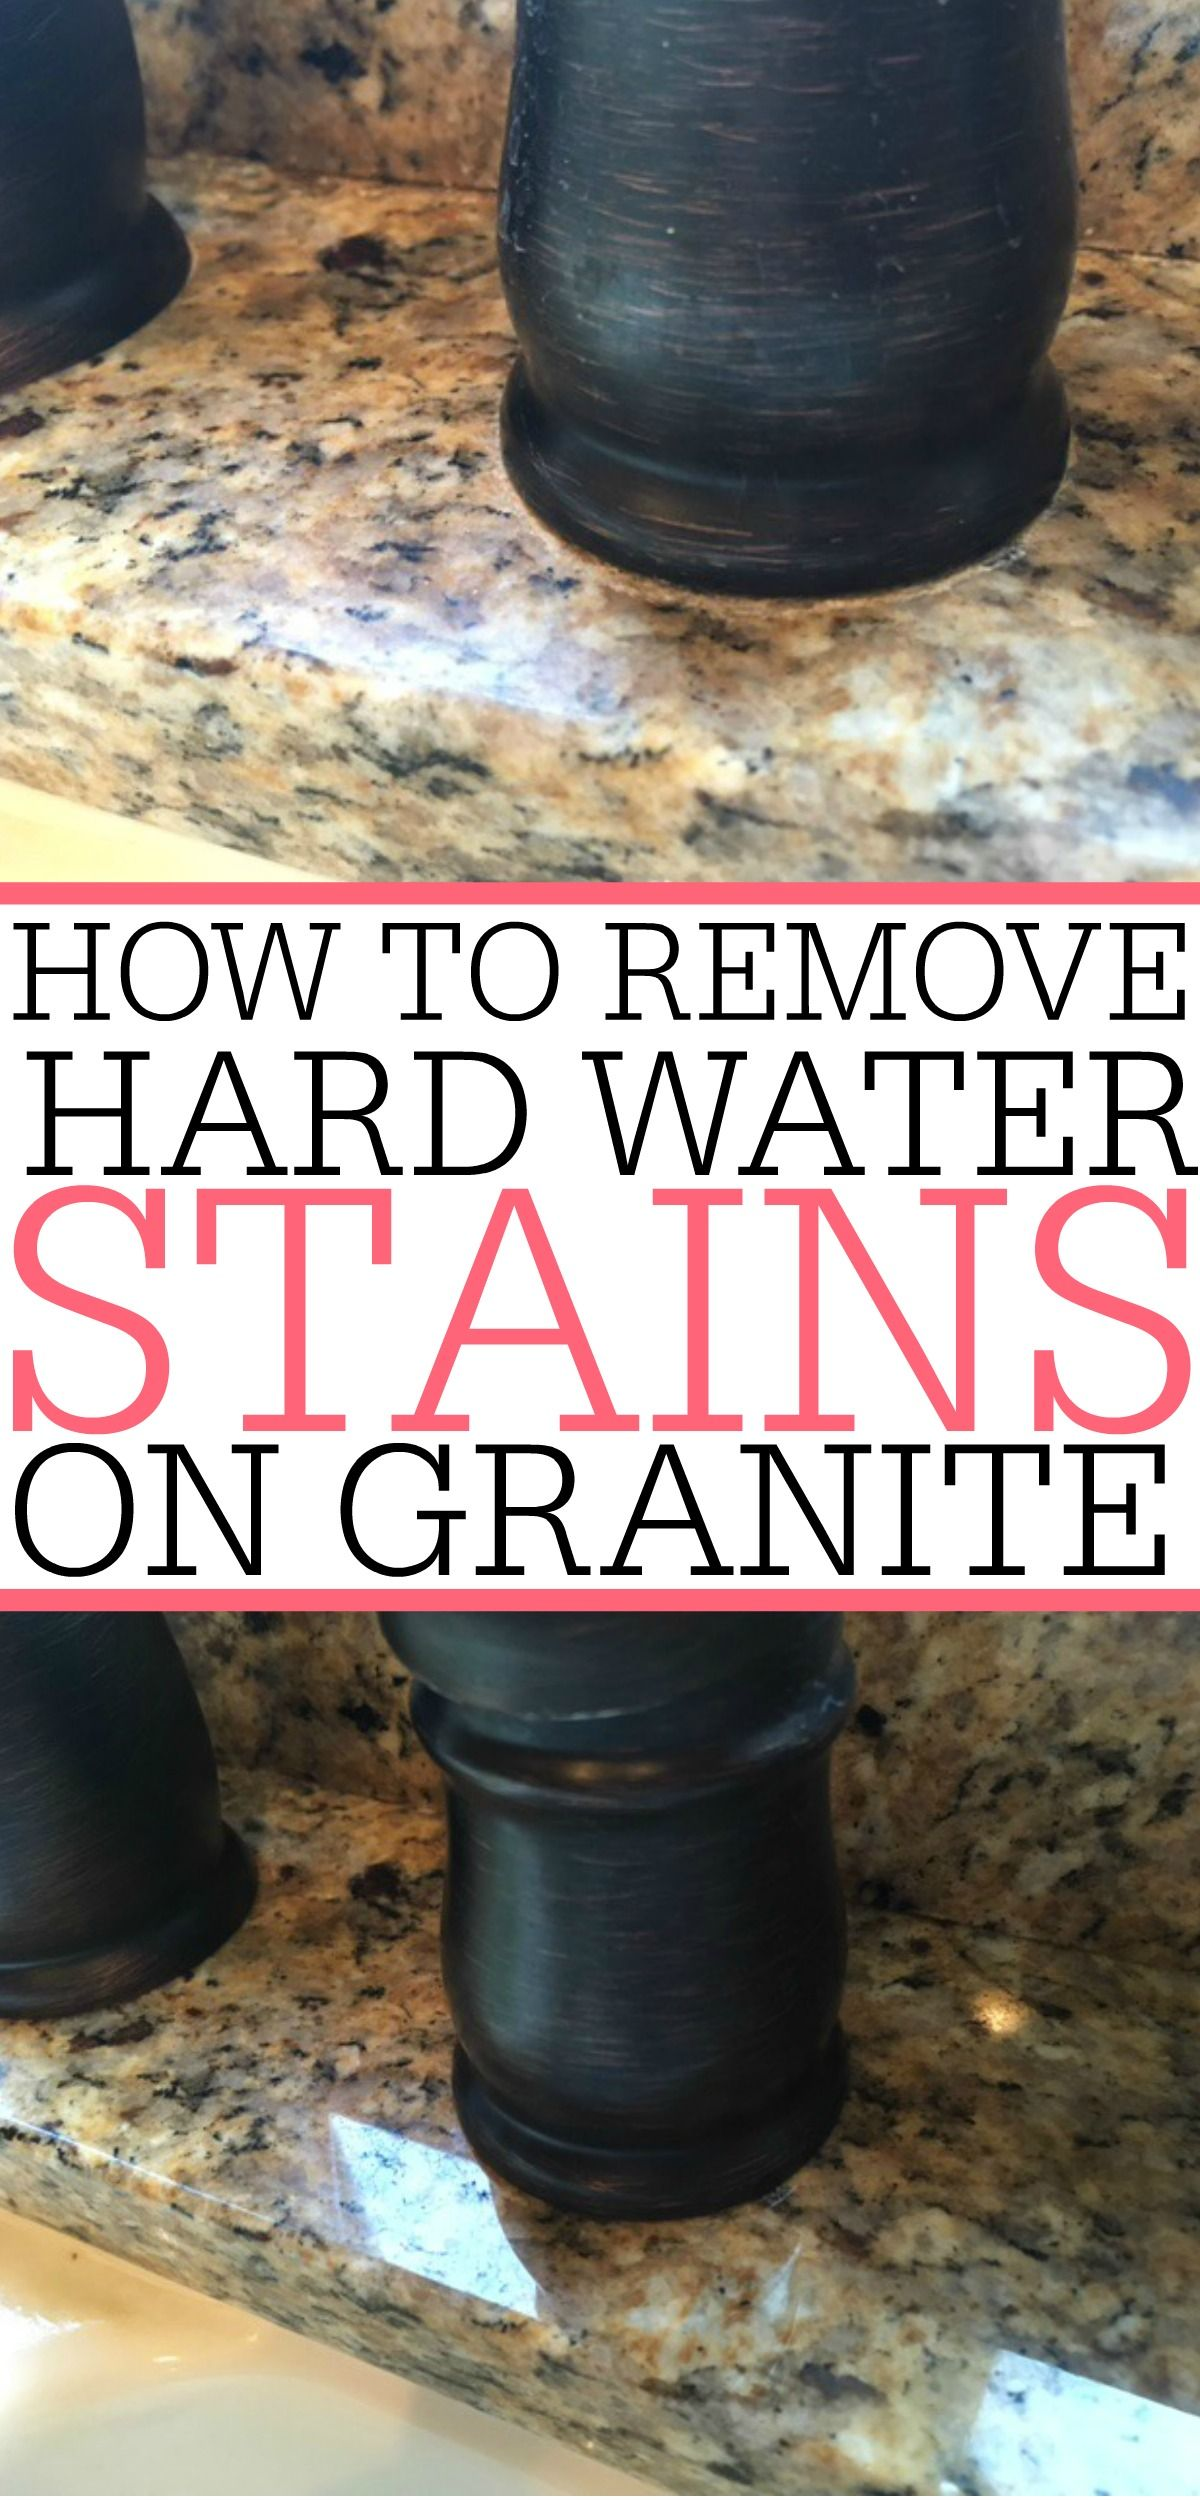 Dealing With A Water Stain On Granite No Problem It S Easy Removing Stains From This Simple Tip Will Be Gone In Time